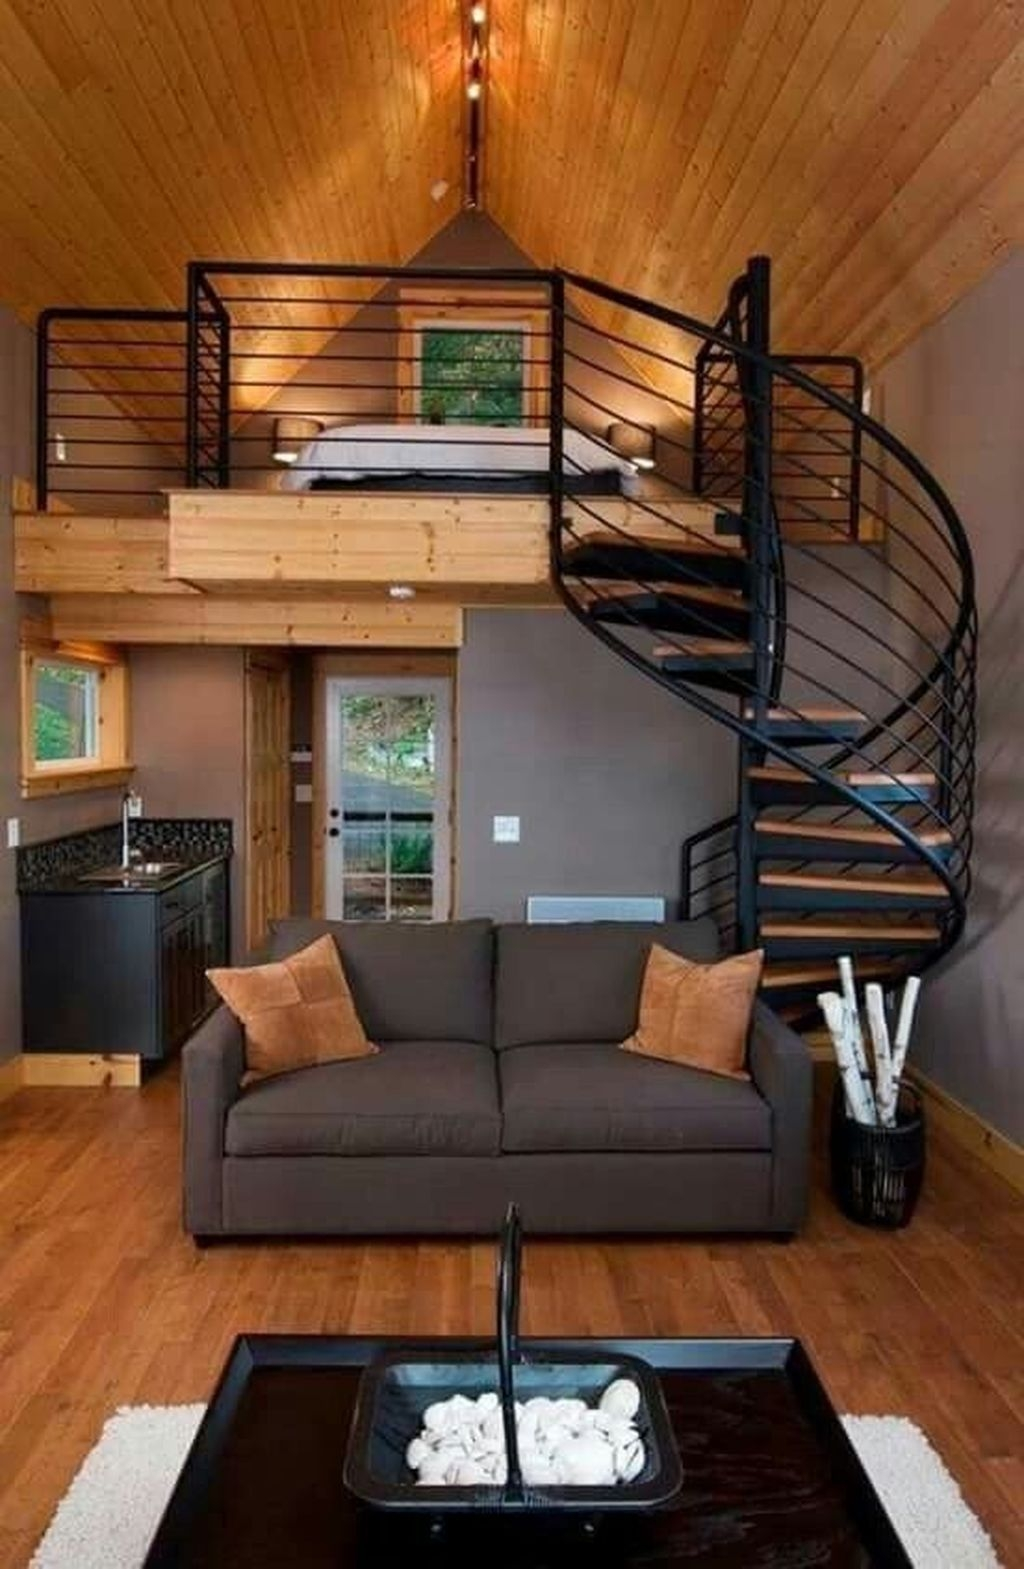 Stunning Tiny House Design Ideas 45